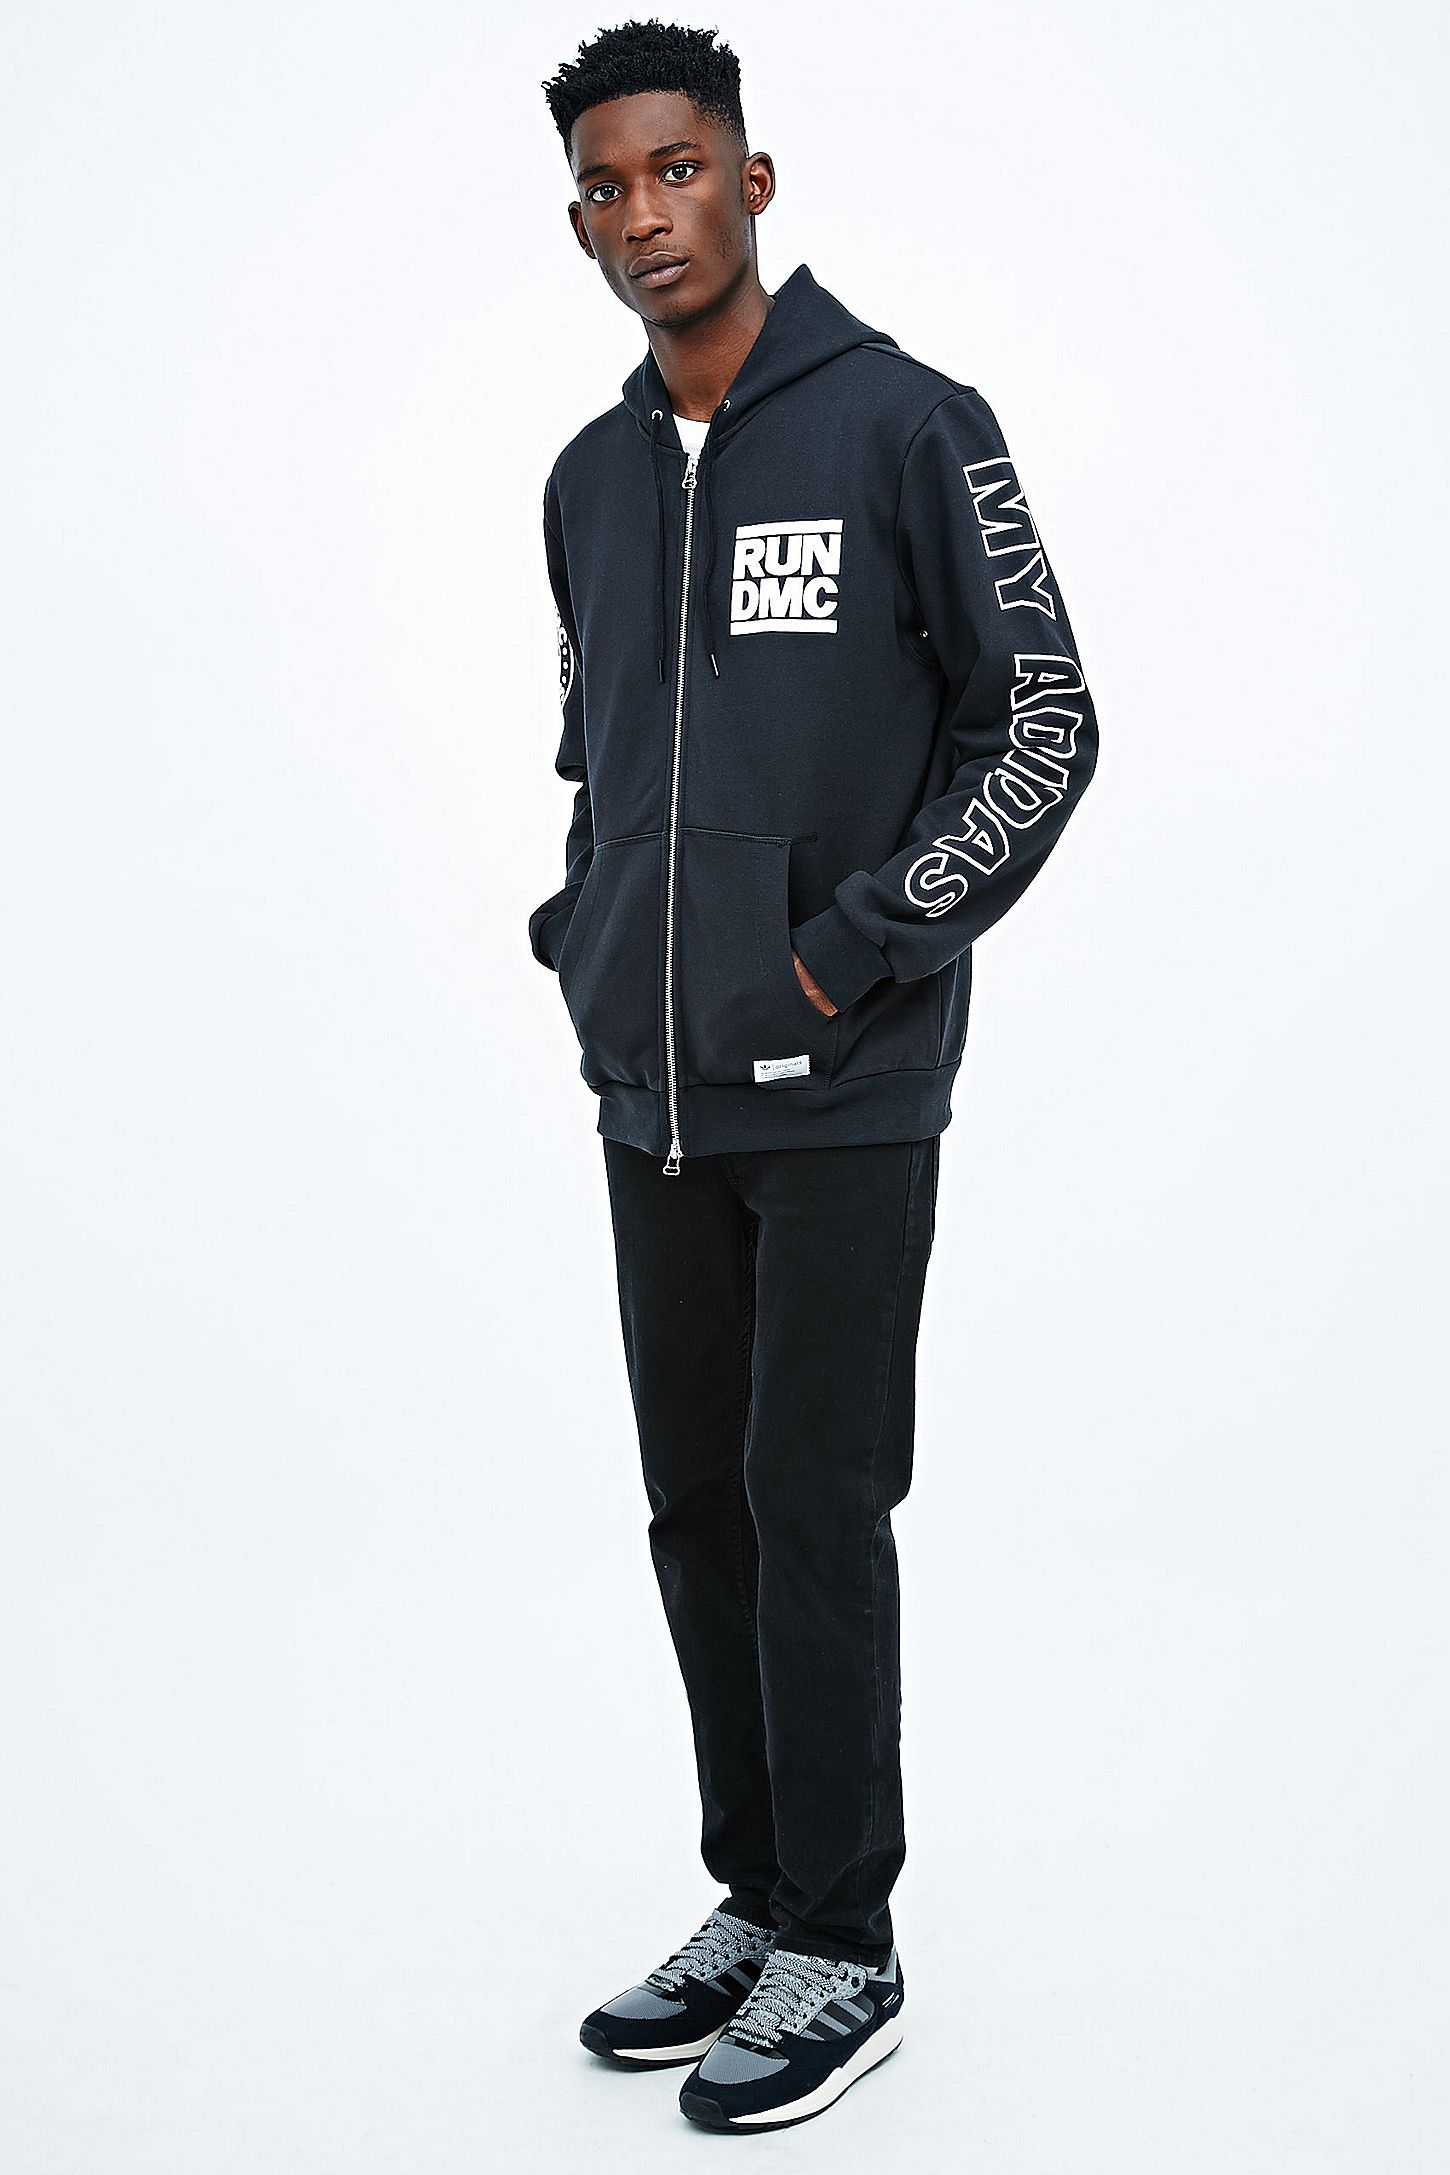 Urban Capuche Run Originals Adidas Sweat Dmc X Noir À Zippé zSnxPCw